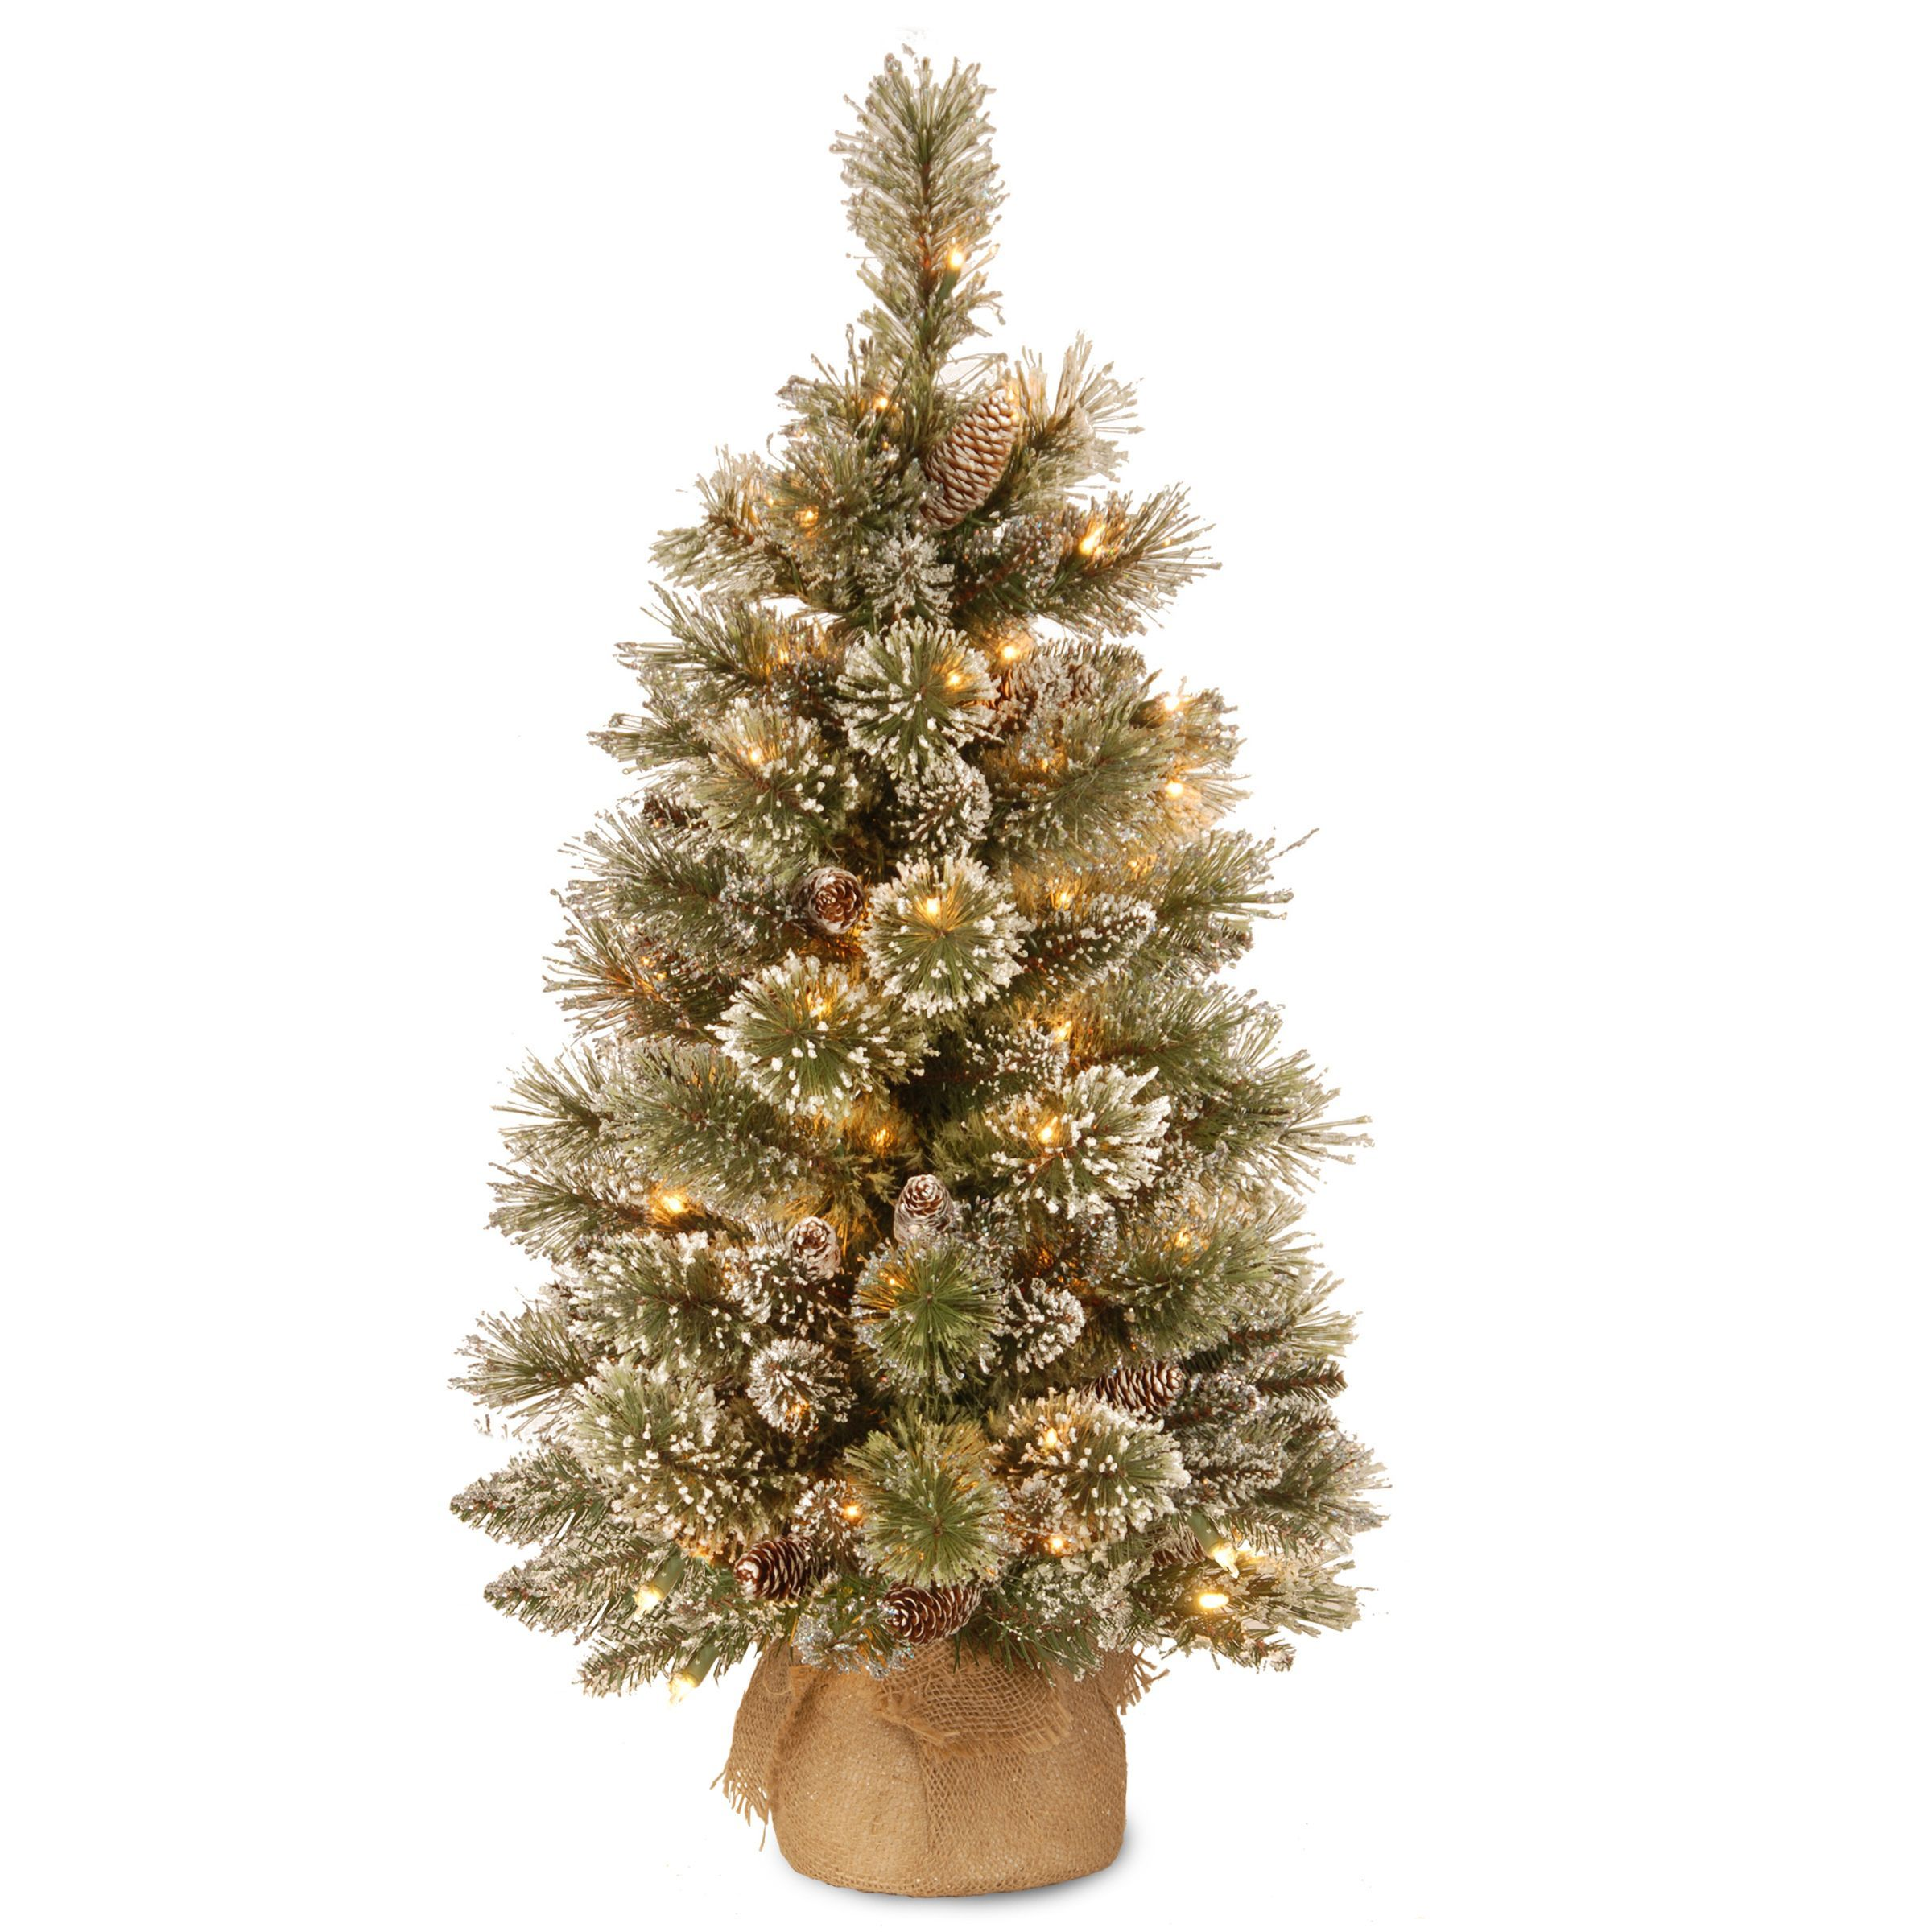 National Tree Company 3' Glittery Bristle Pine Christmas